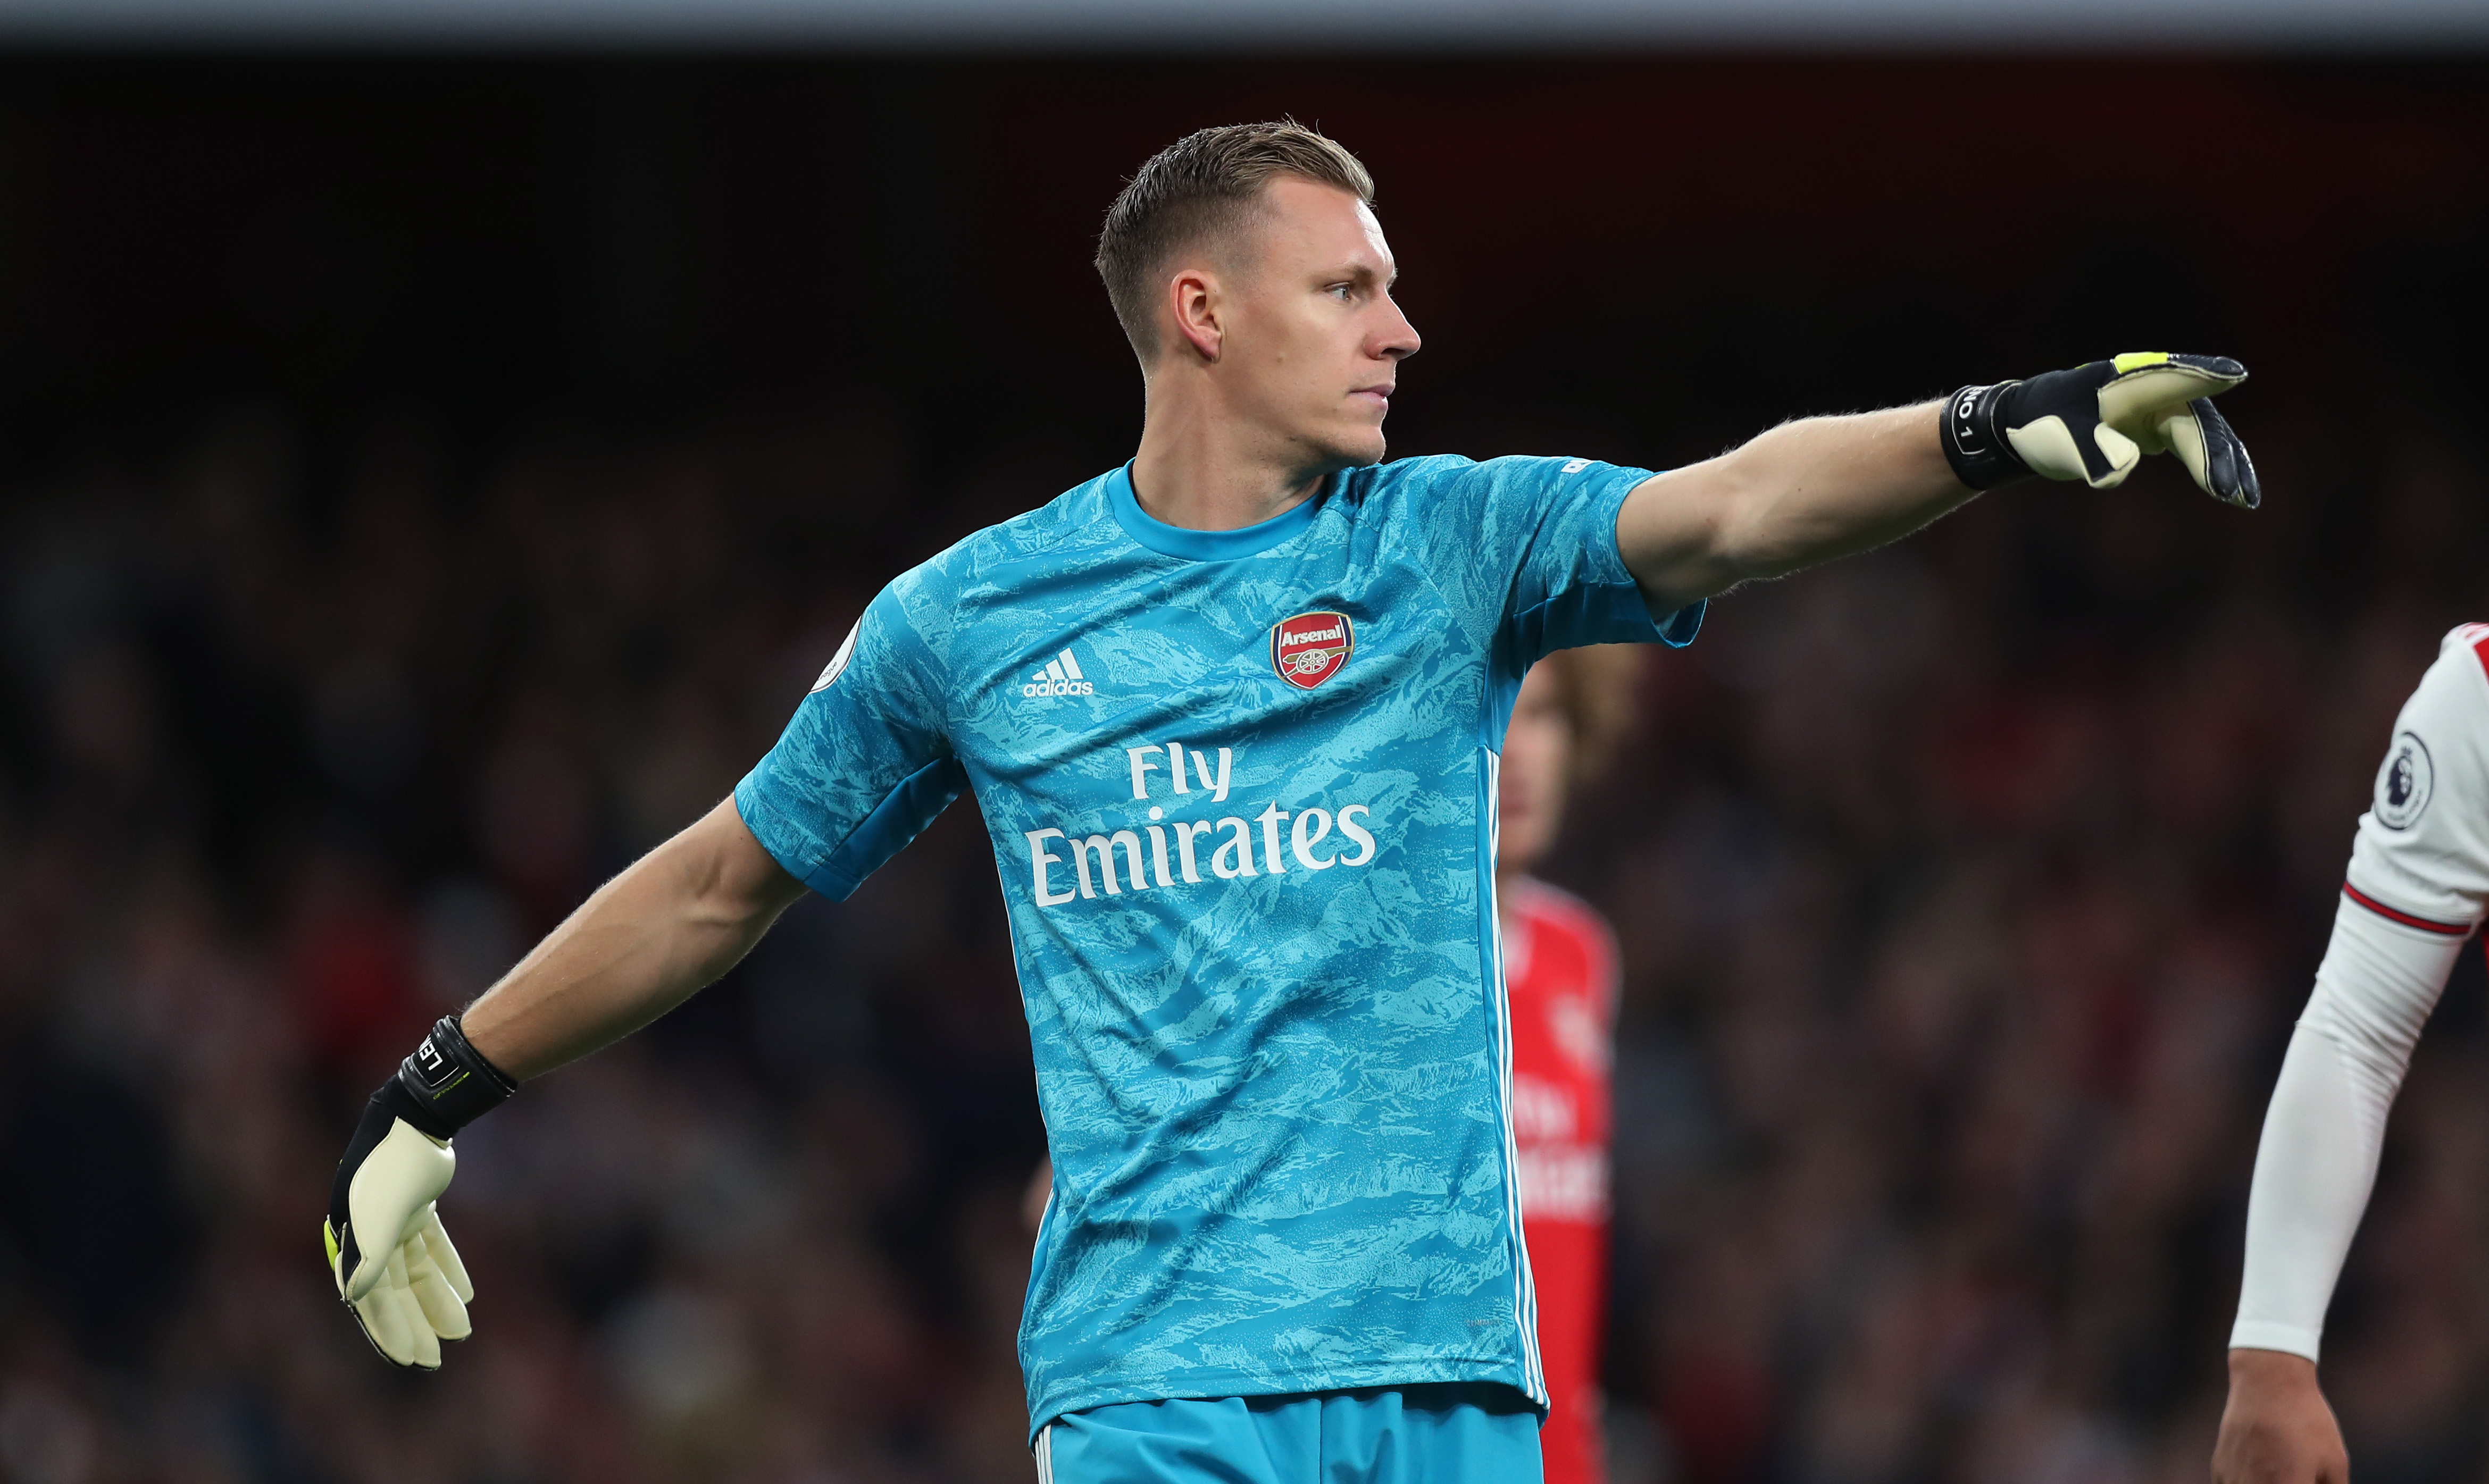 This Arsenal player must step up and deliver amidst a crisis at the club - opinion